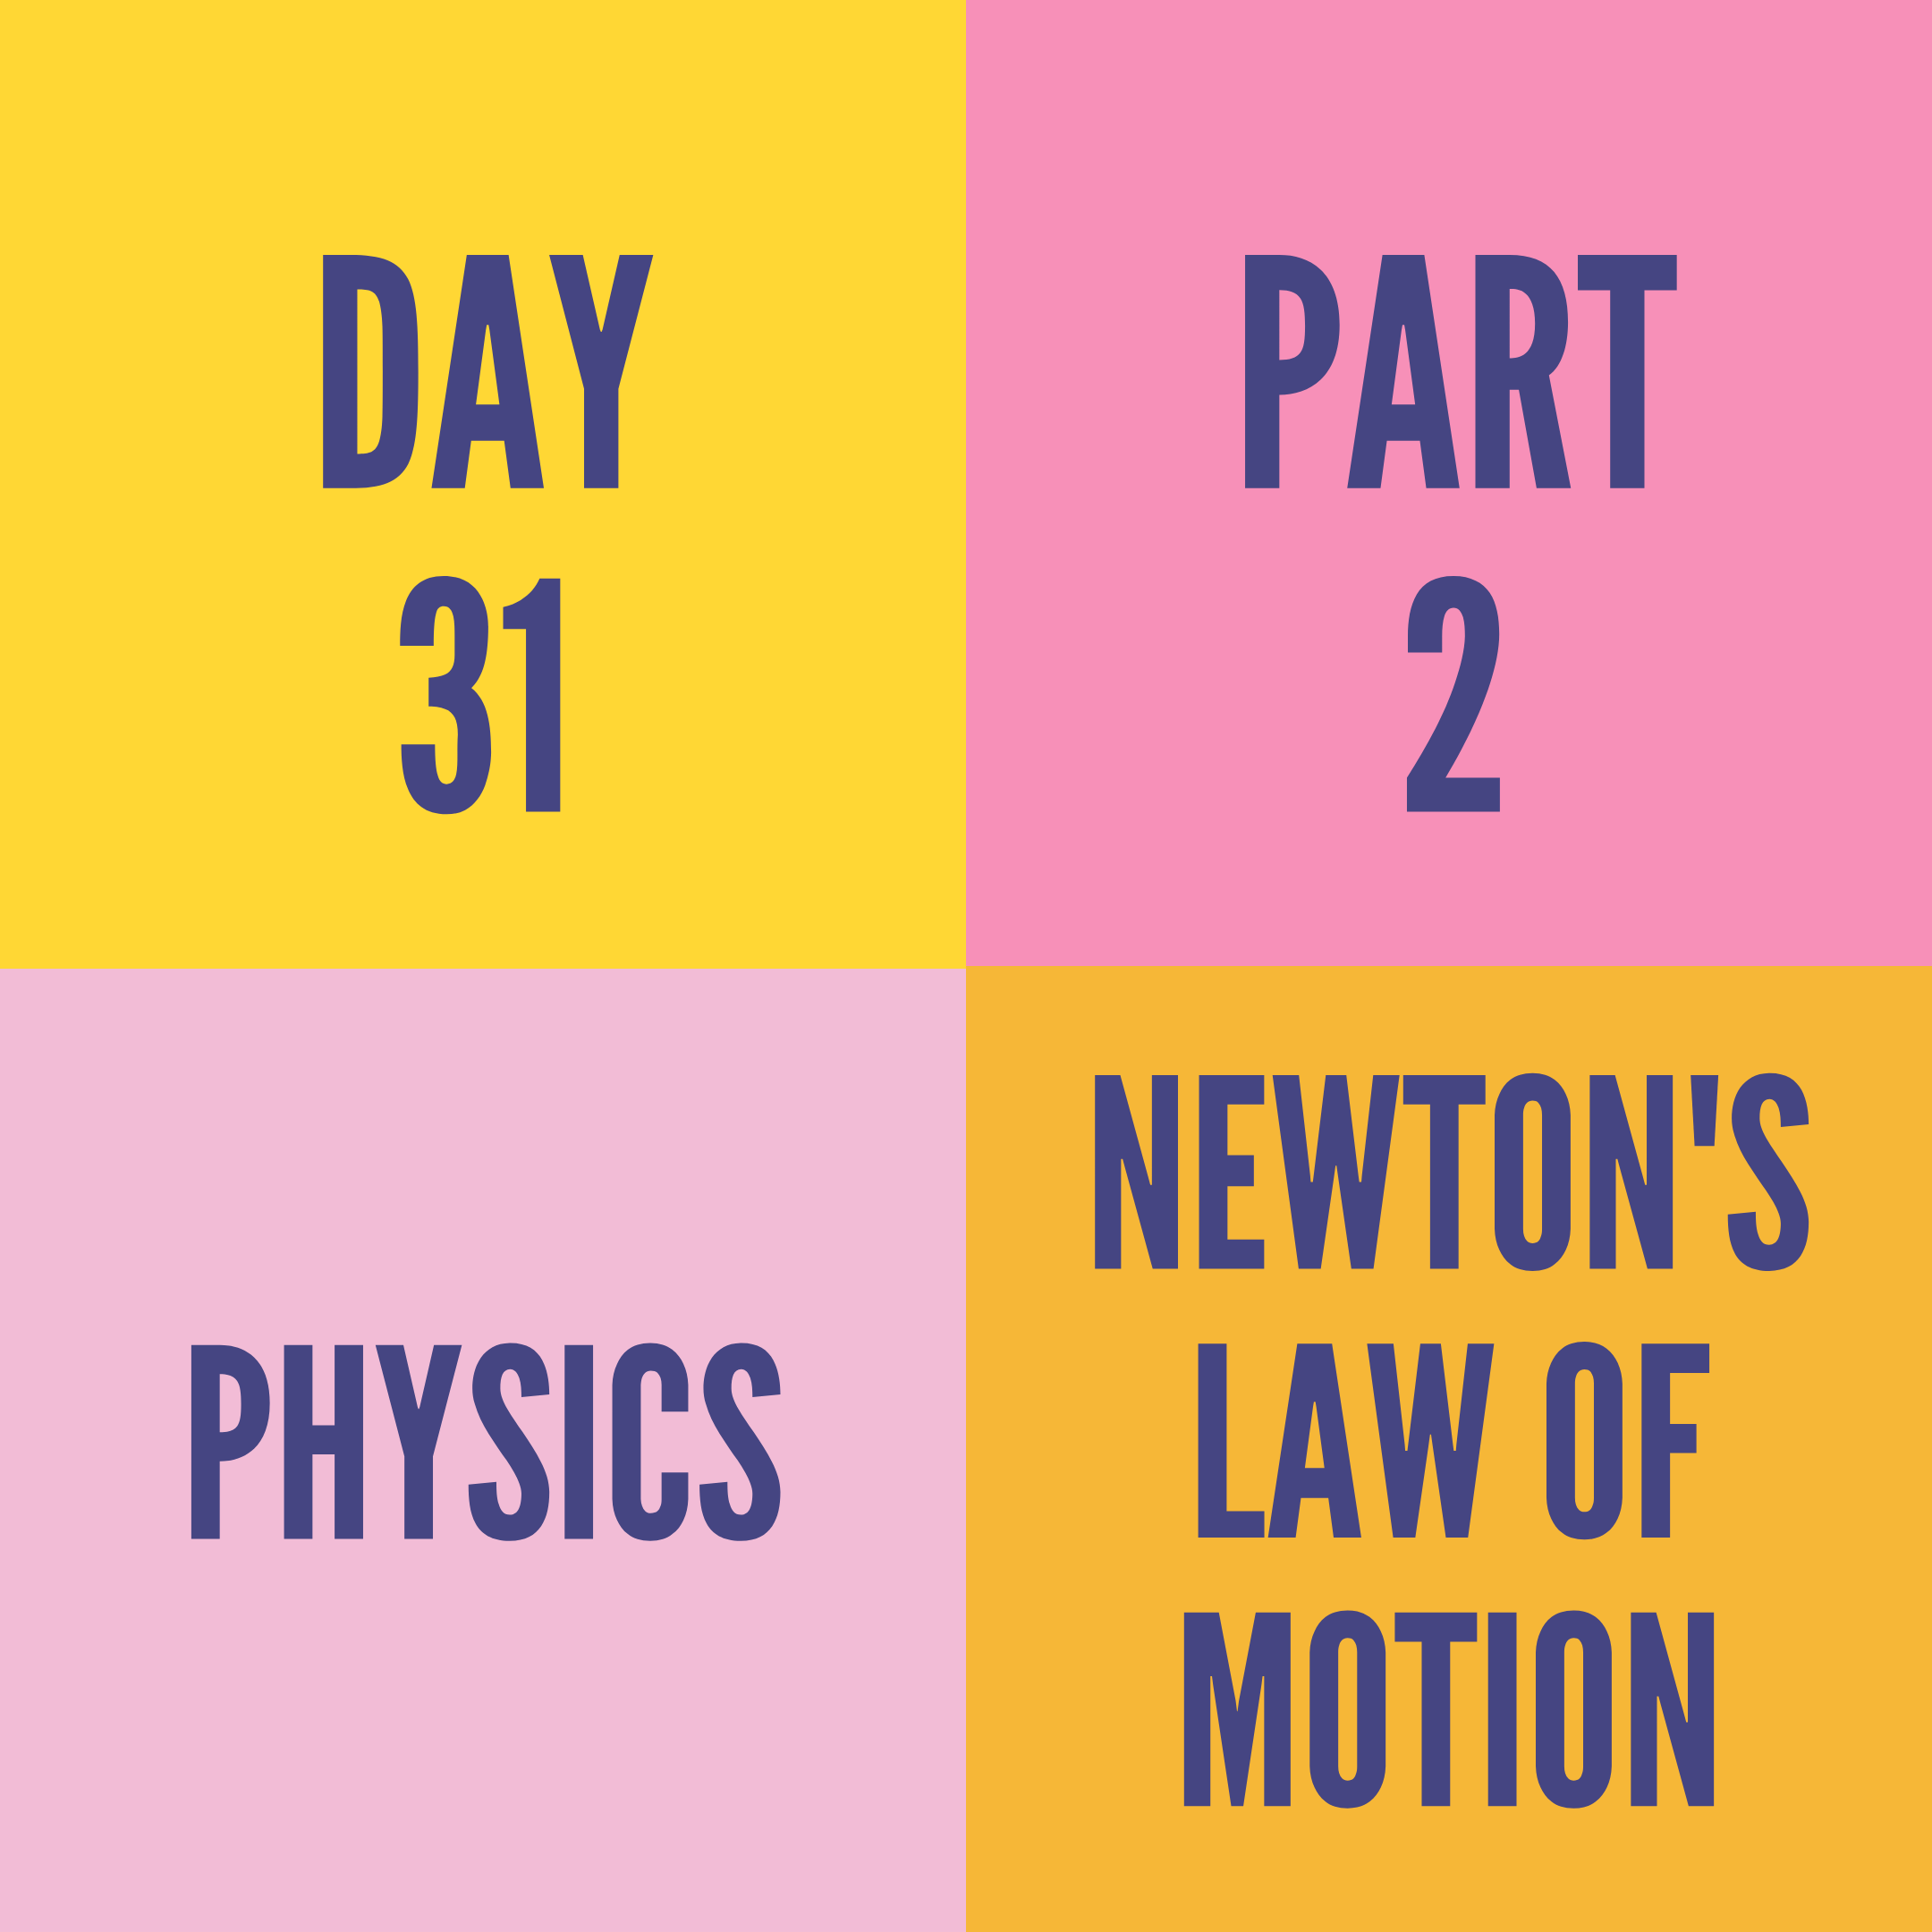 DAY-31 PART-2 NEWTON'S LAW OF MOTION